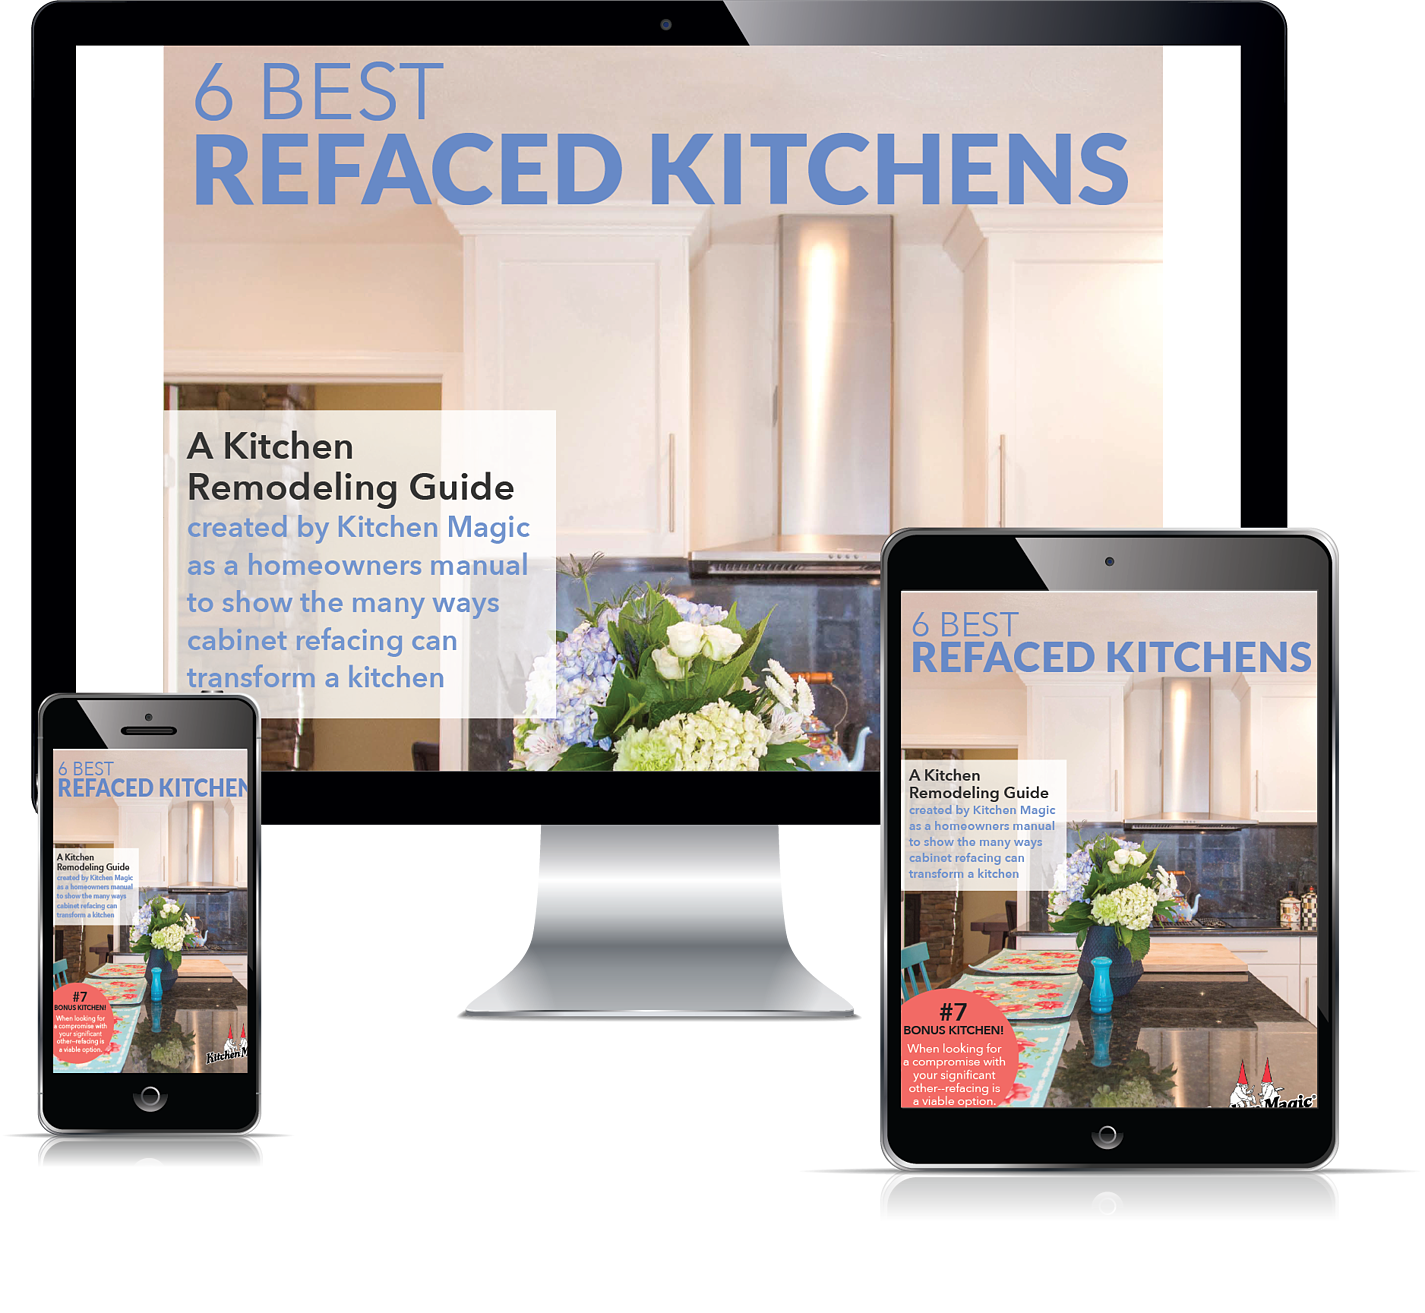 6-best-refaced-kitchens-landing (1).png